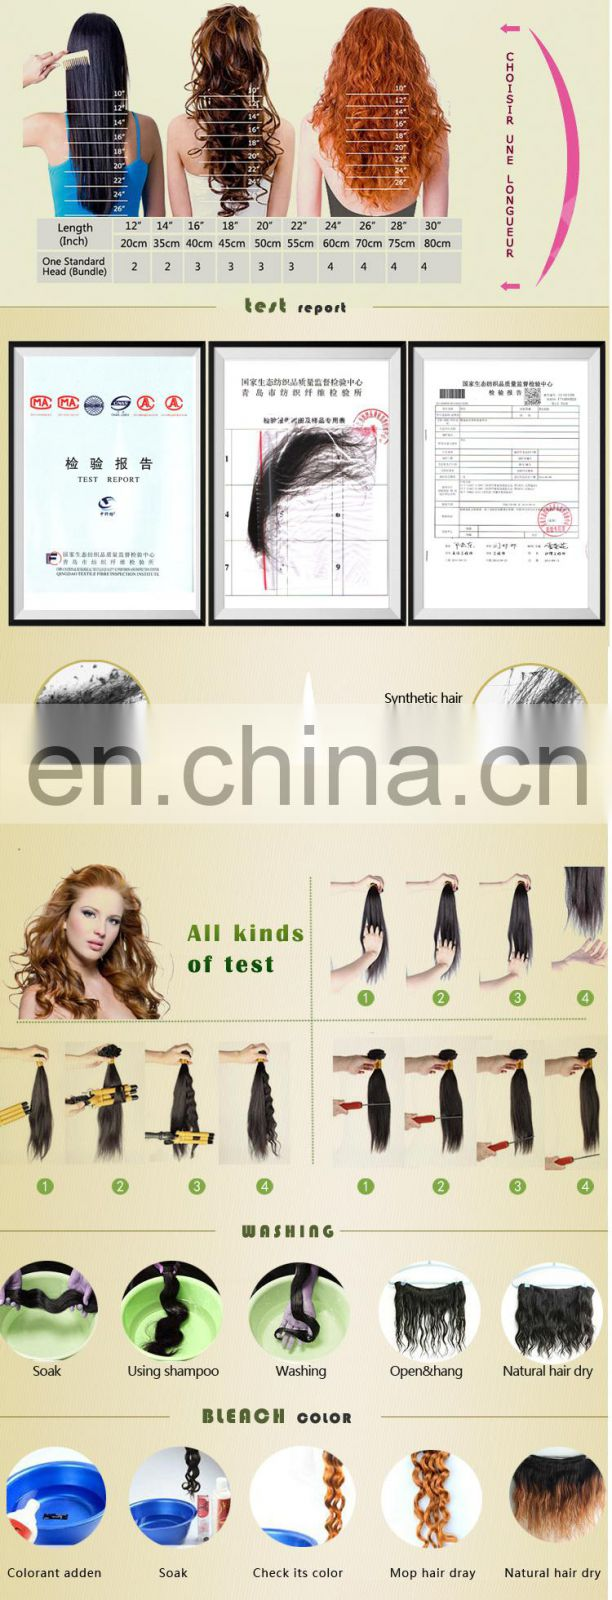 China wholesale most popular buy human hair online express alibaba brazilian hair weave fast shipping